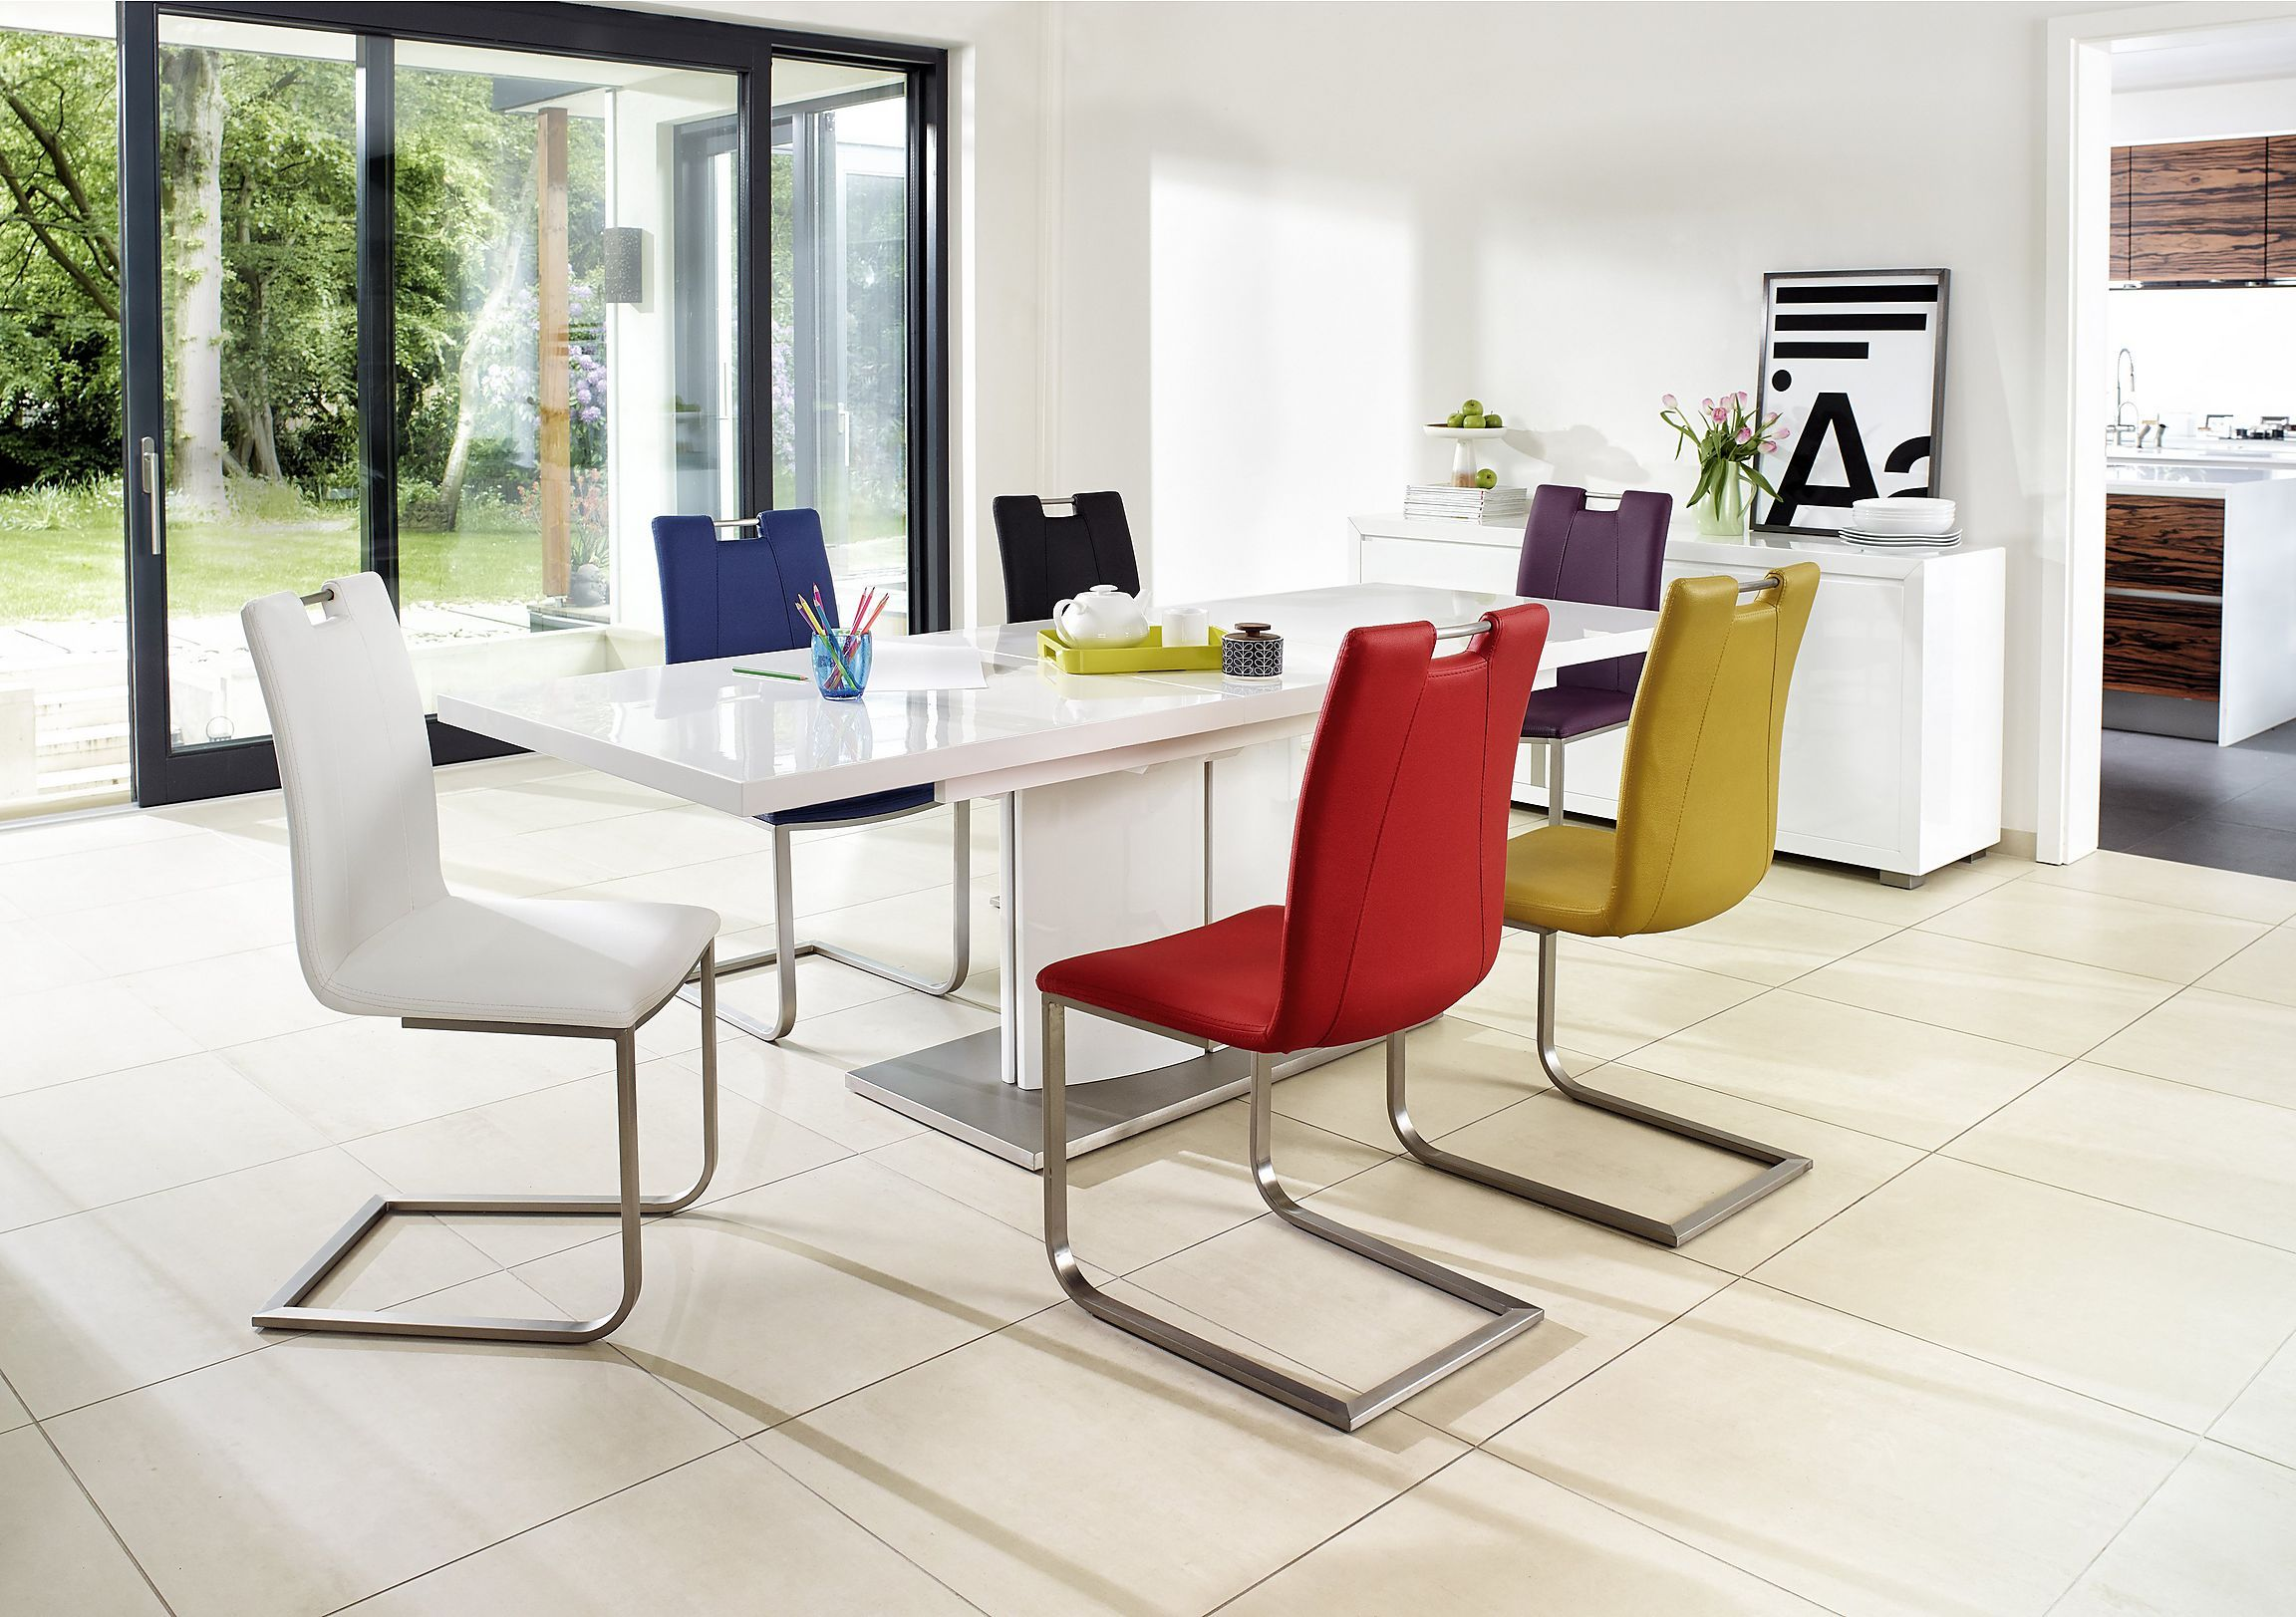 Beautifully proportioned ultramodern table is the perfect fit for